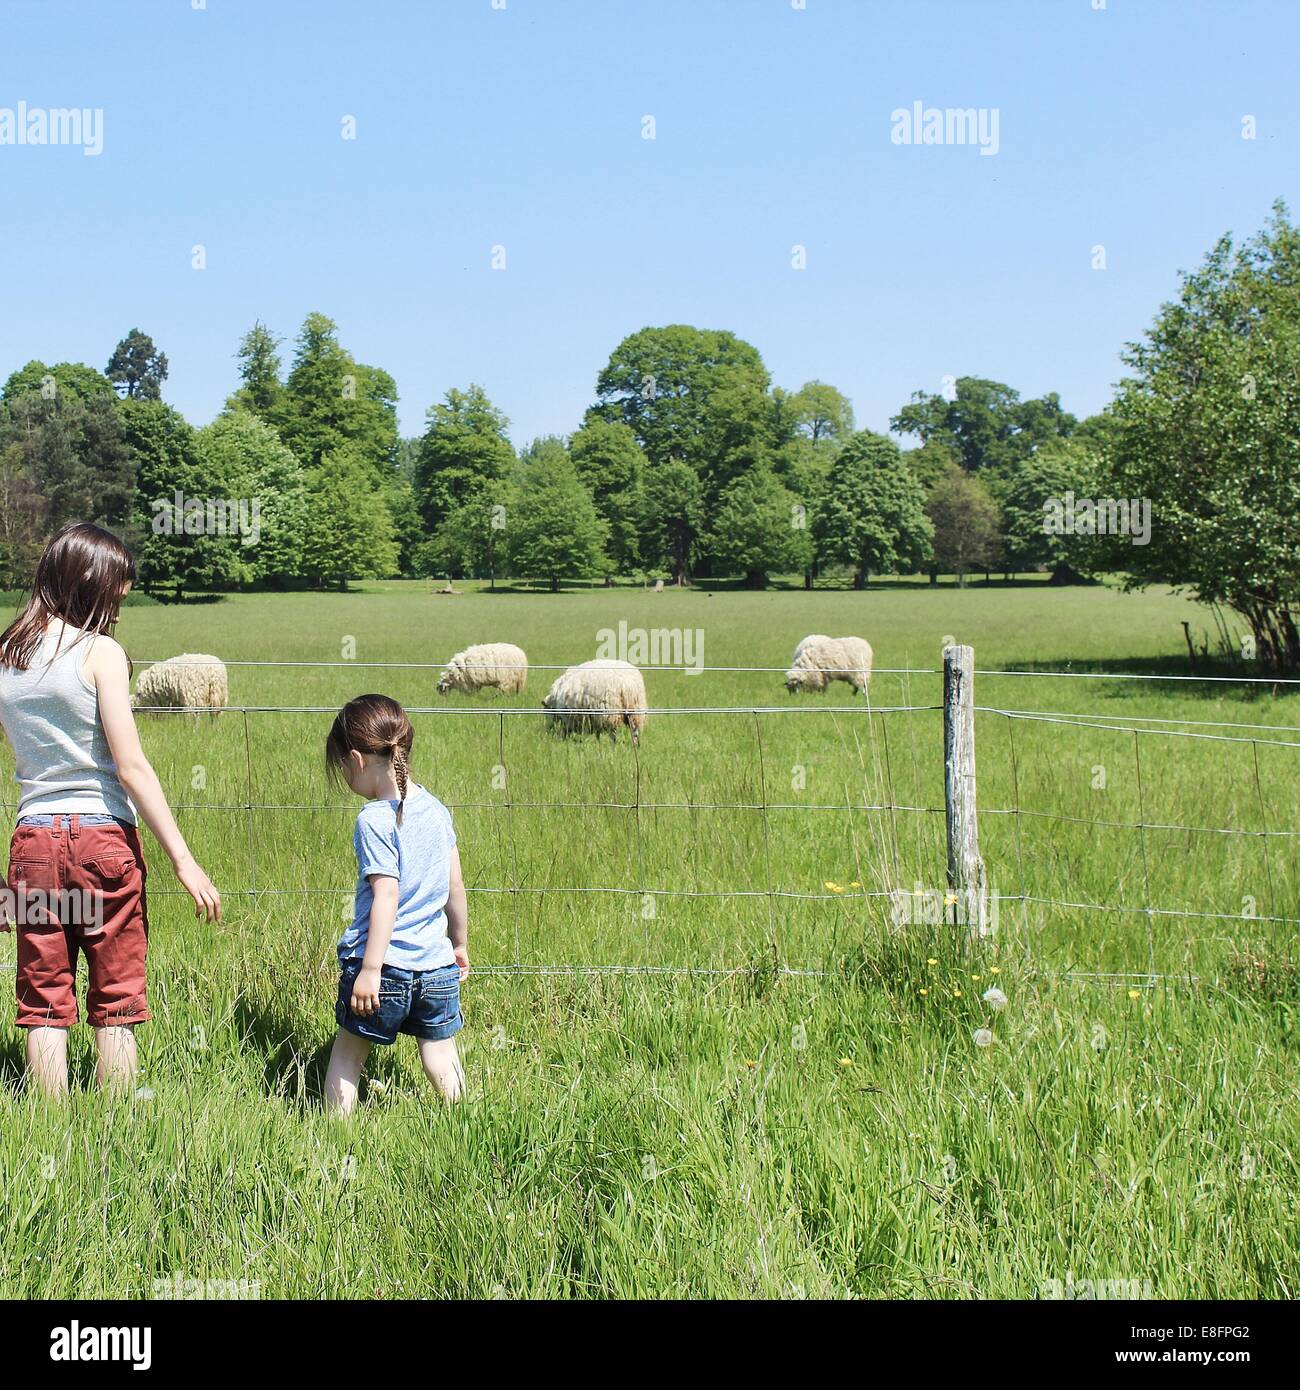 Rear view of two girls standing by fence looking at sheep - Stock Image